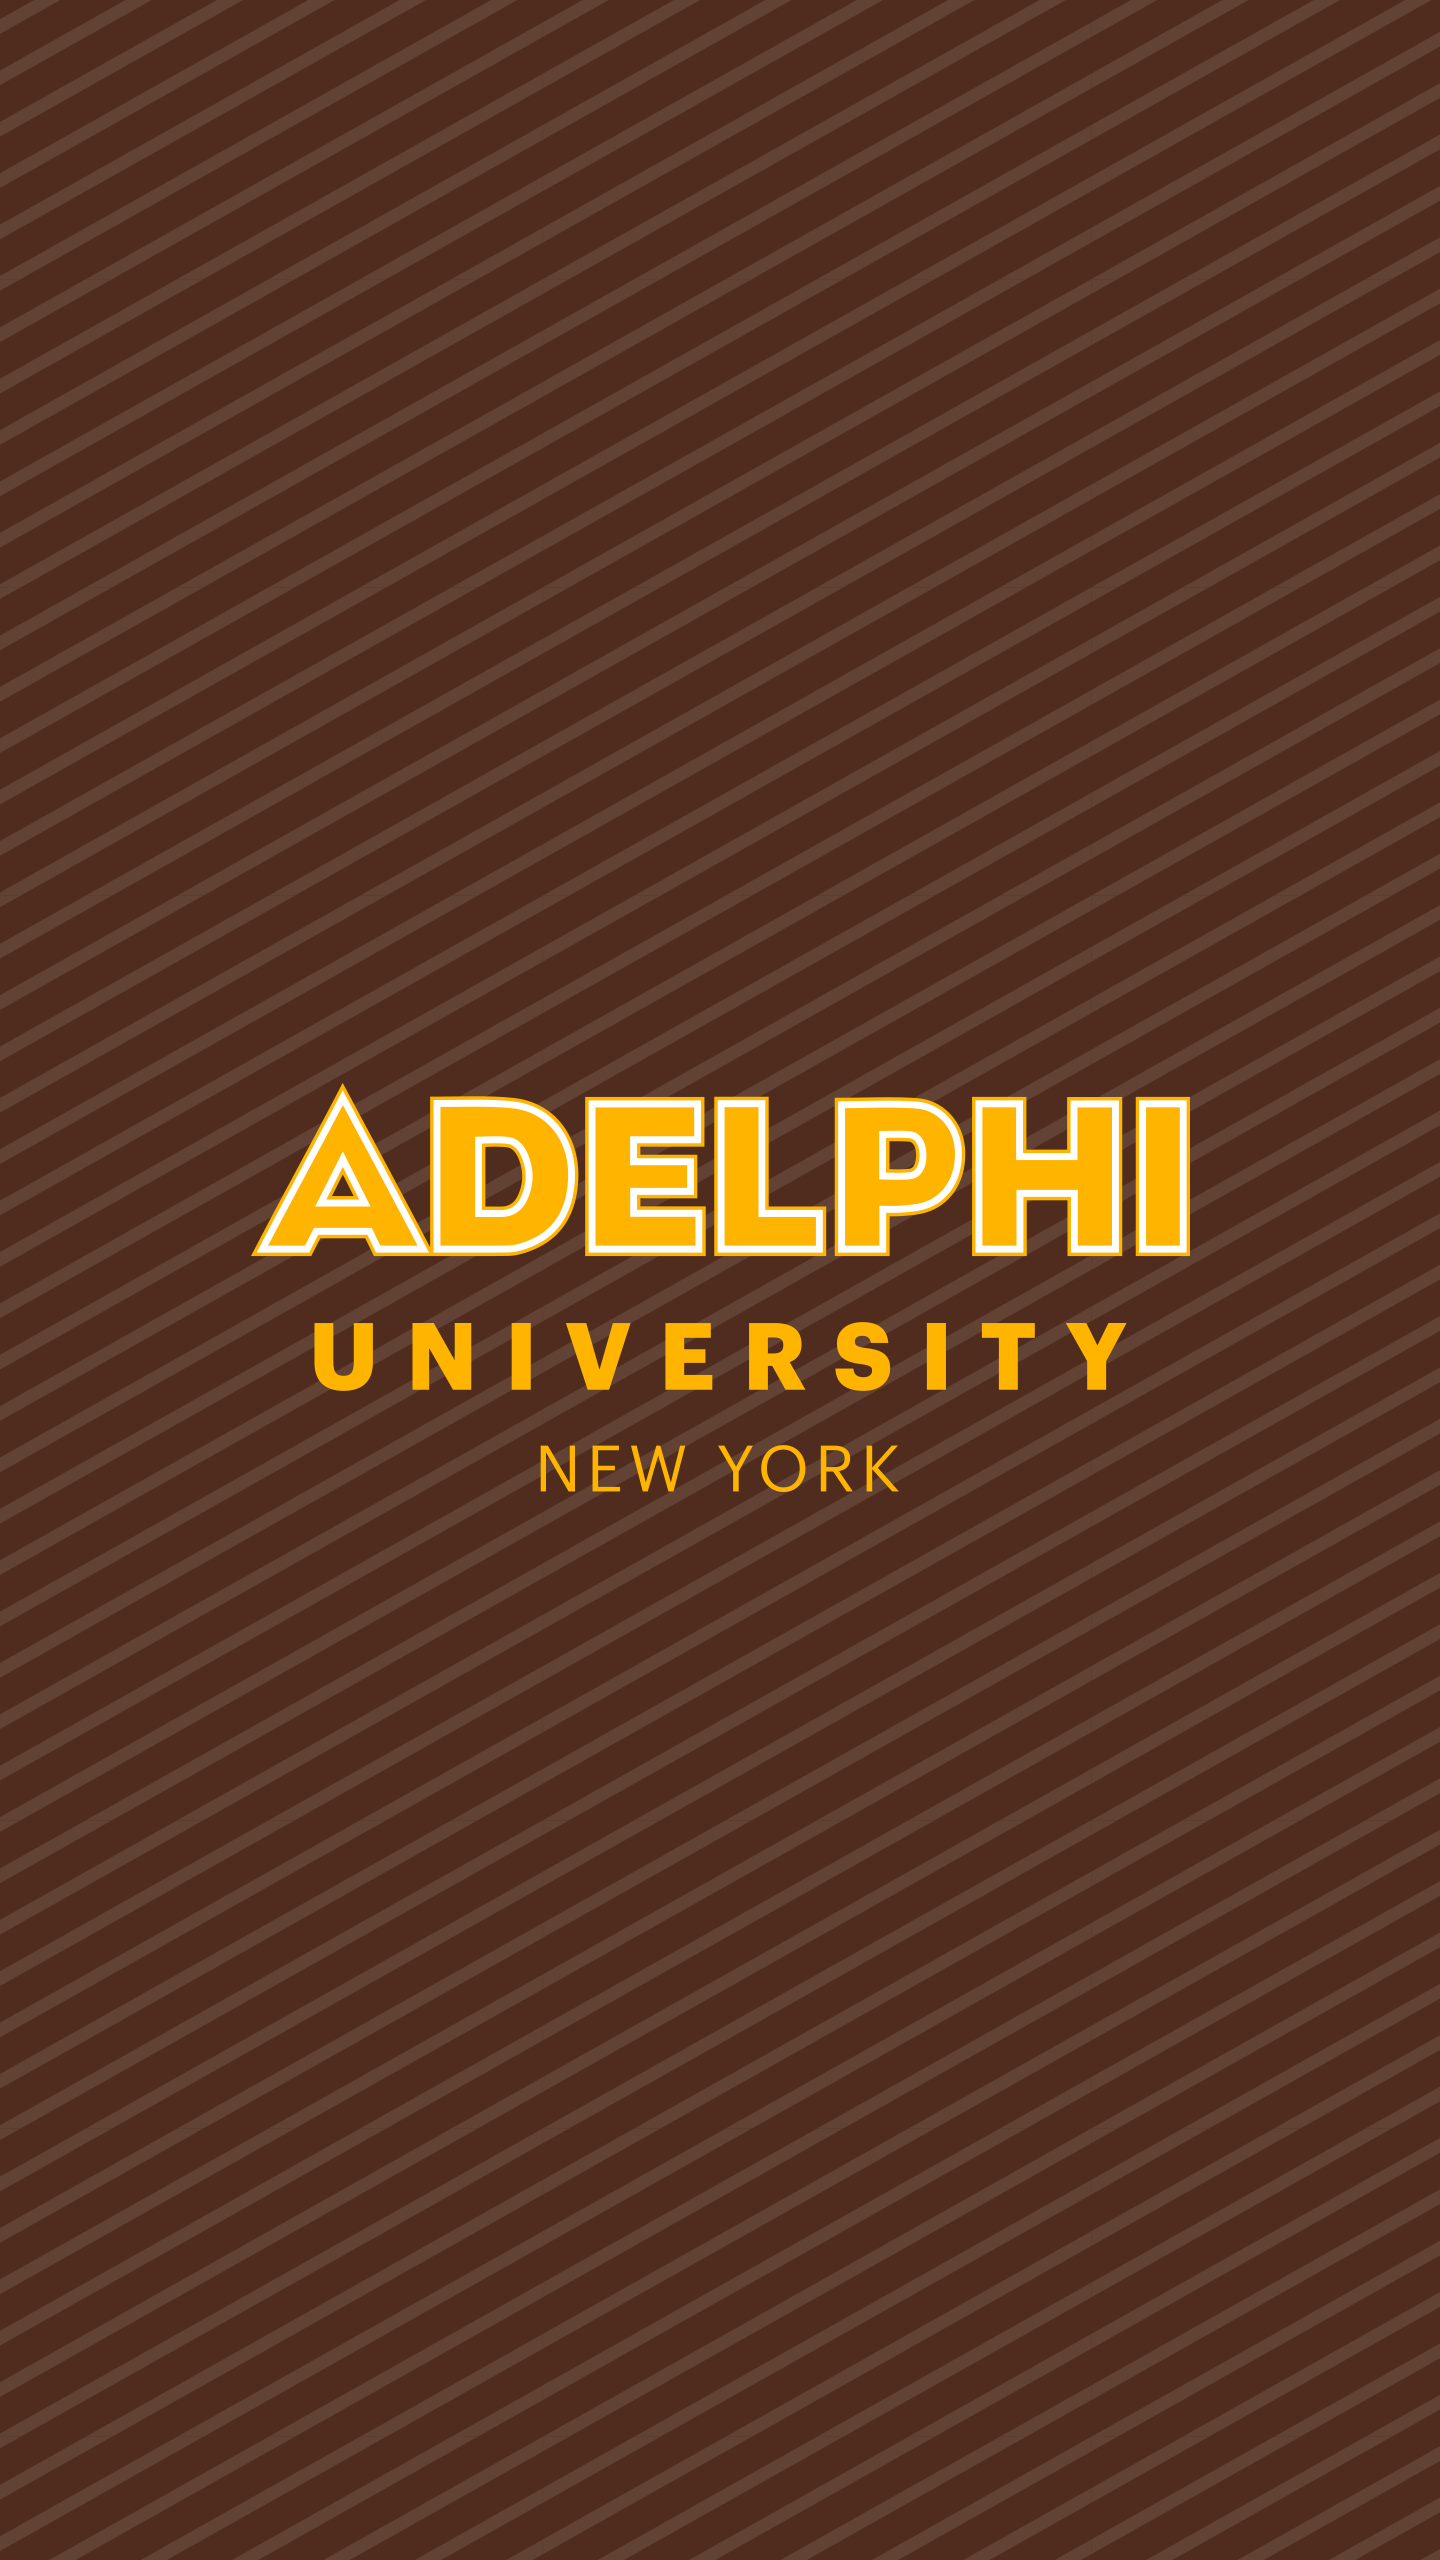 Smartphone - Adelphi Brown Wallpaper